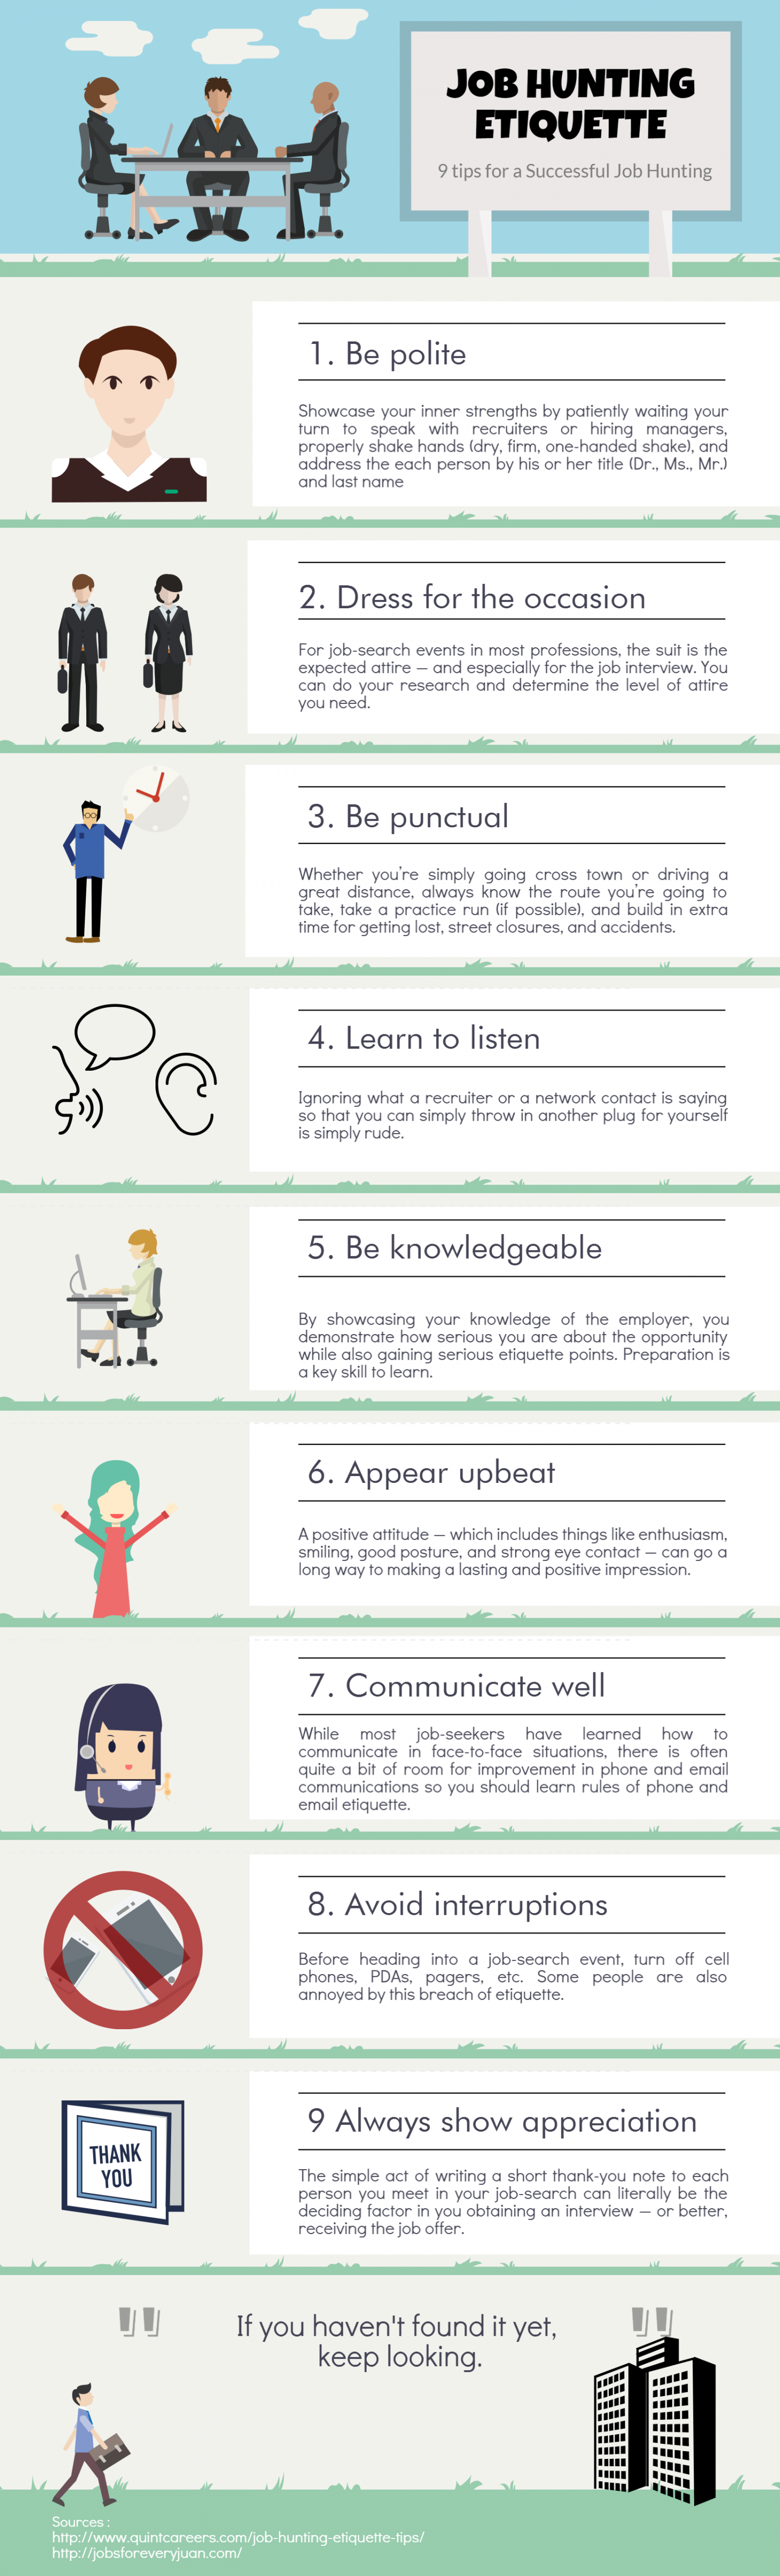 9 Tips for Job Hunting Etiquette Infographic